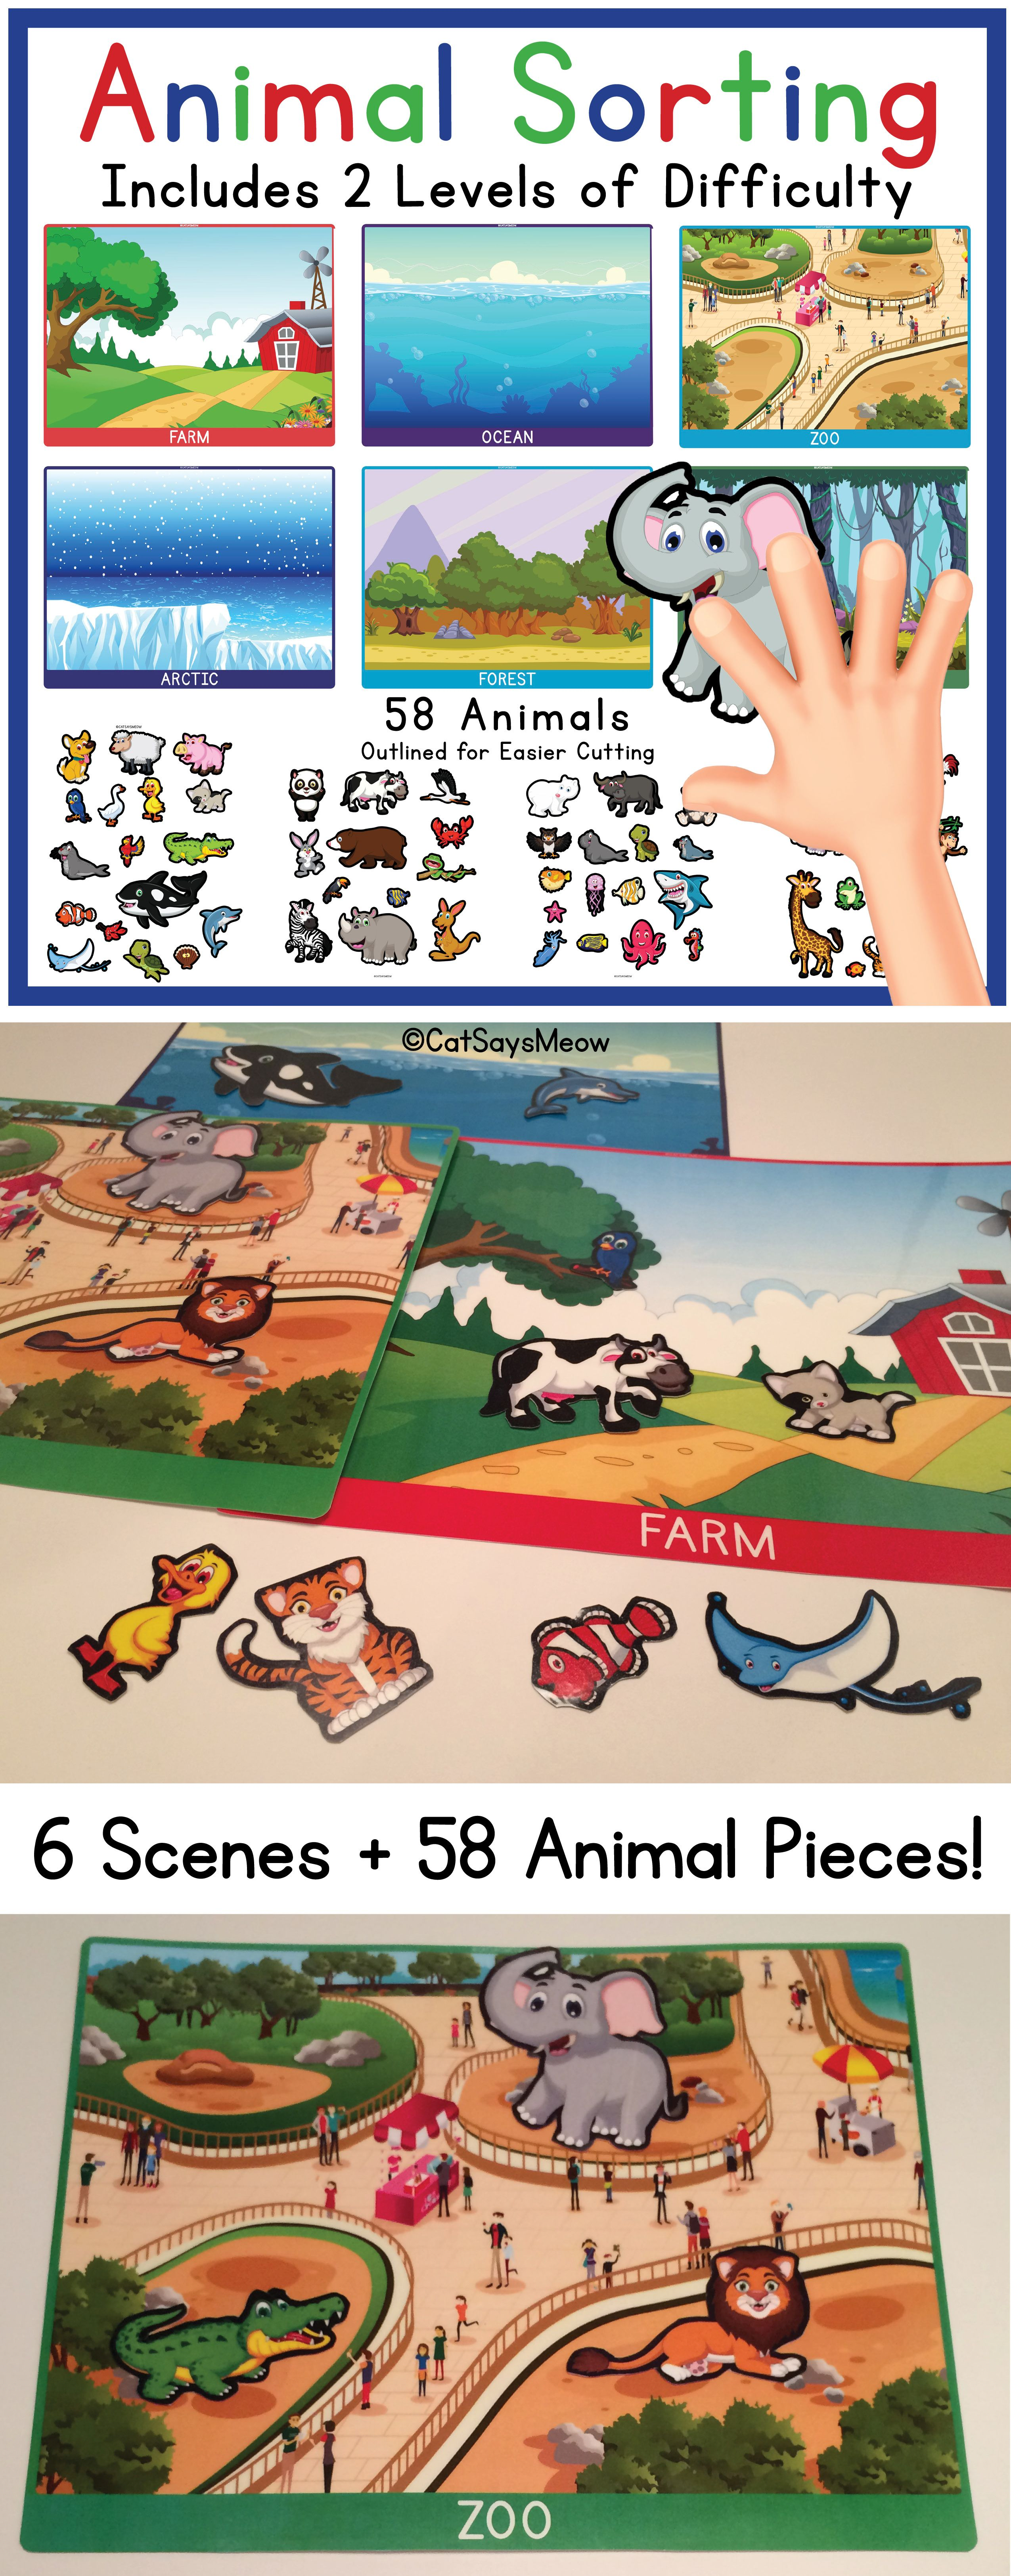 Animal Sorting Categories 2 Levels Of Difficulty Zoo